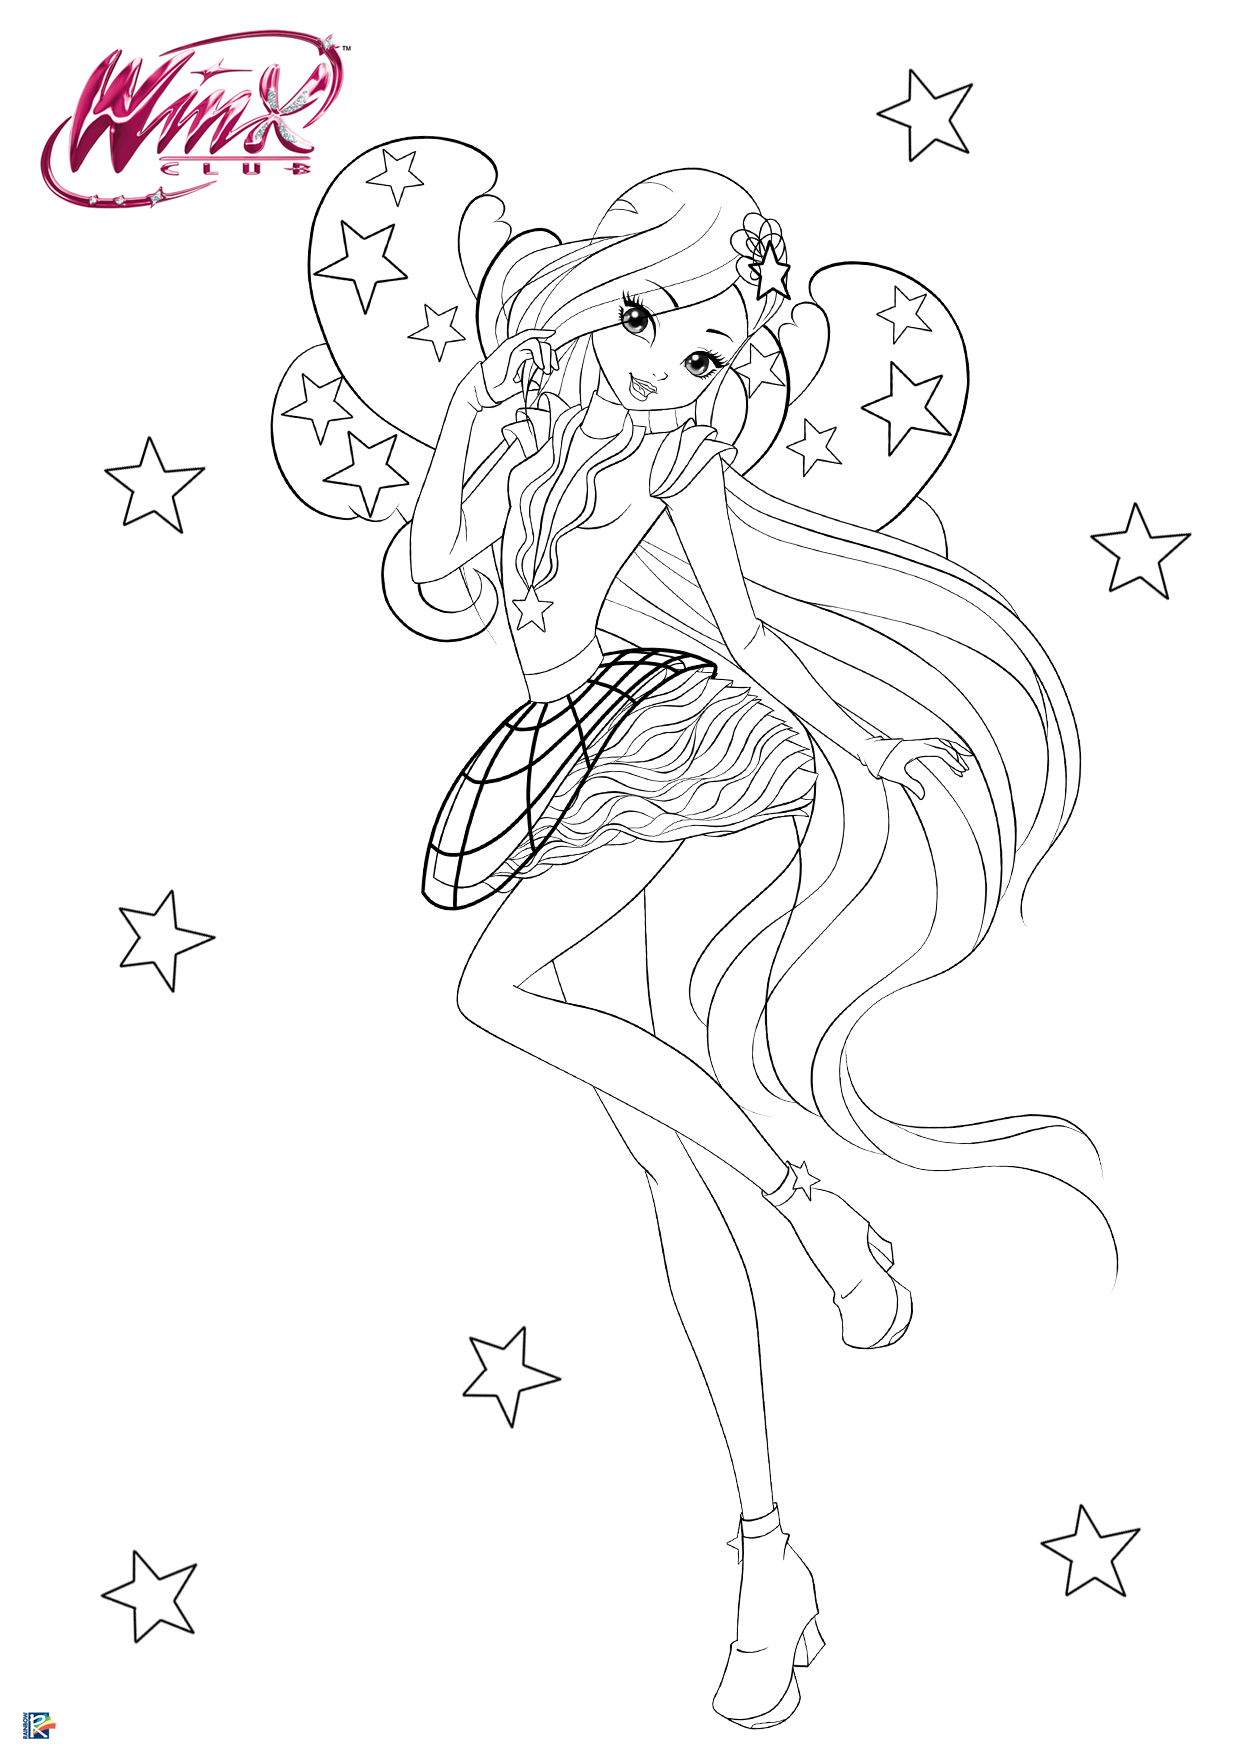 Winx Club Season 8 Coloring Pages With Cosmix Transformation Youloveit Com